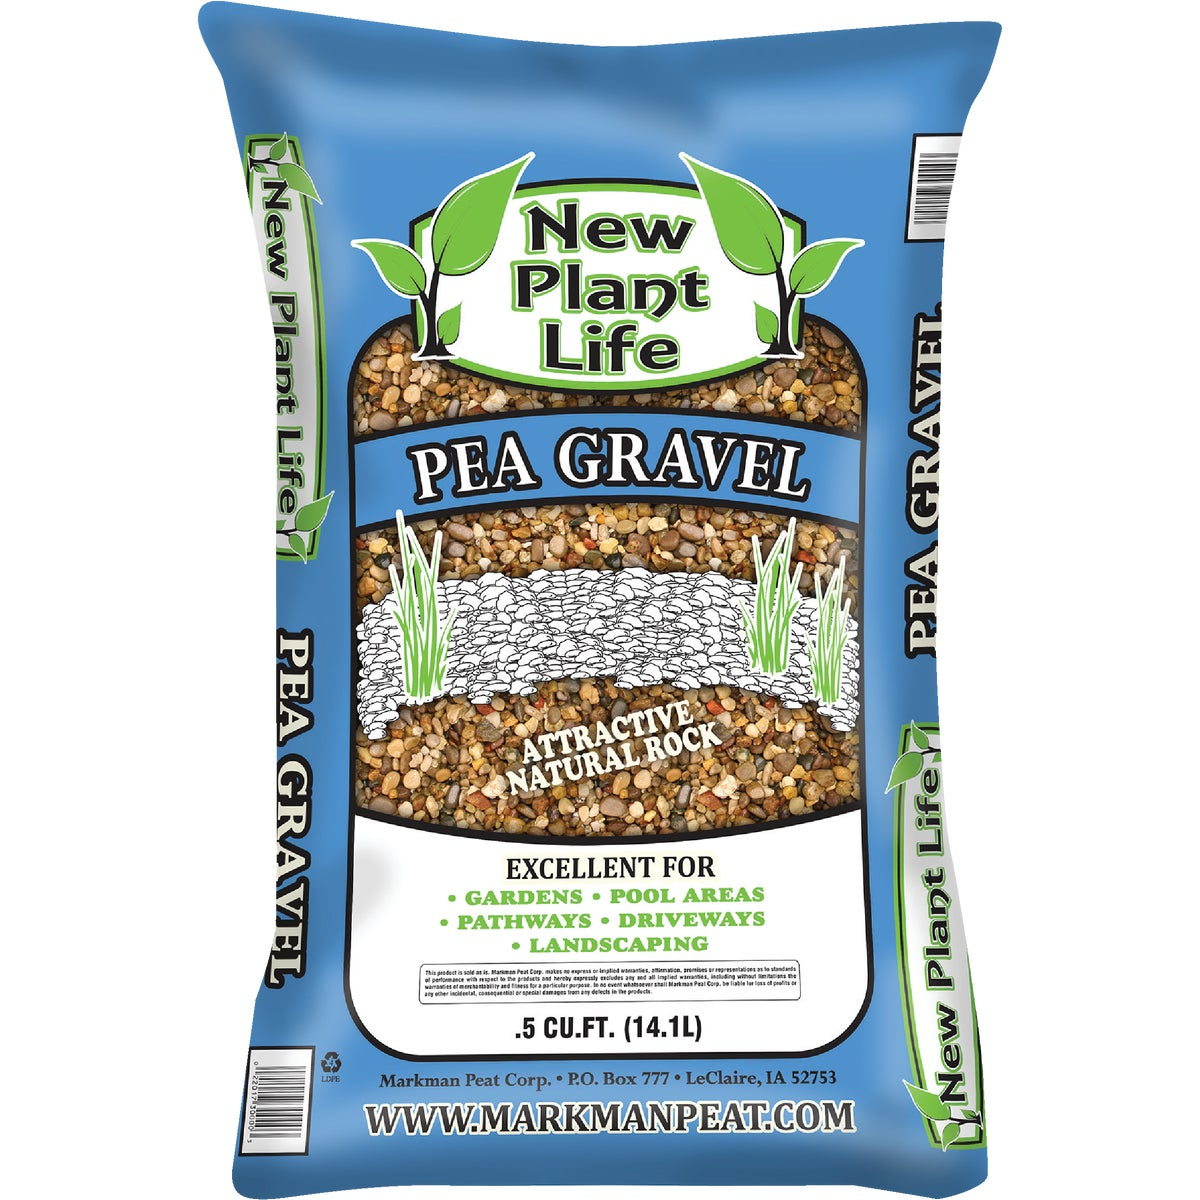 .5 CUFT PEA GRAVEL - 380 by Markman Peat Corp